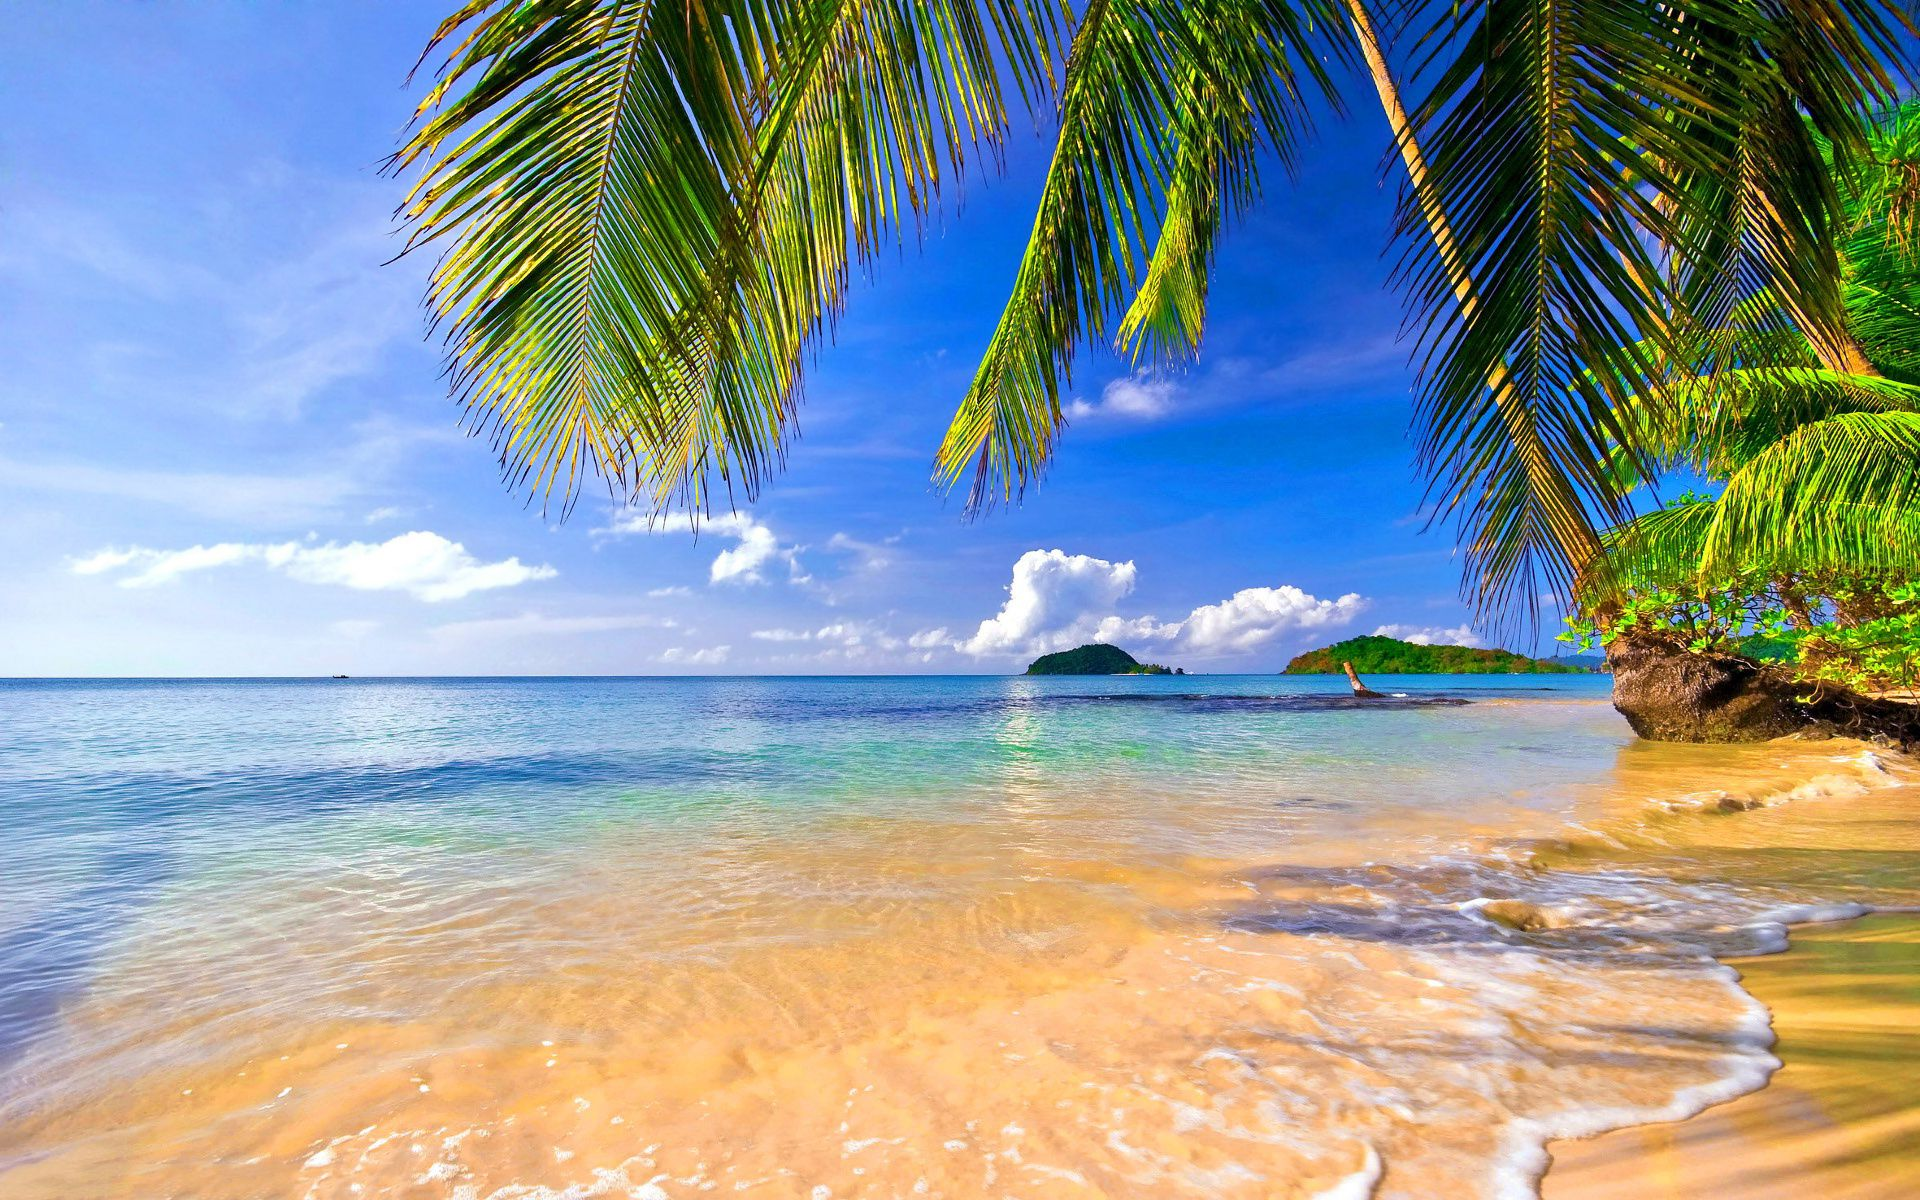 tropical wallpaper desktop jnsrmgksb ijournal | wallpapers for